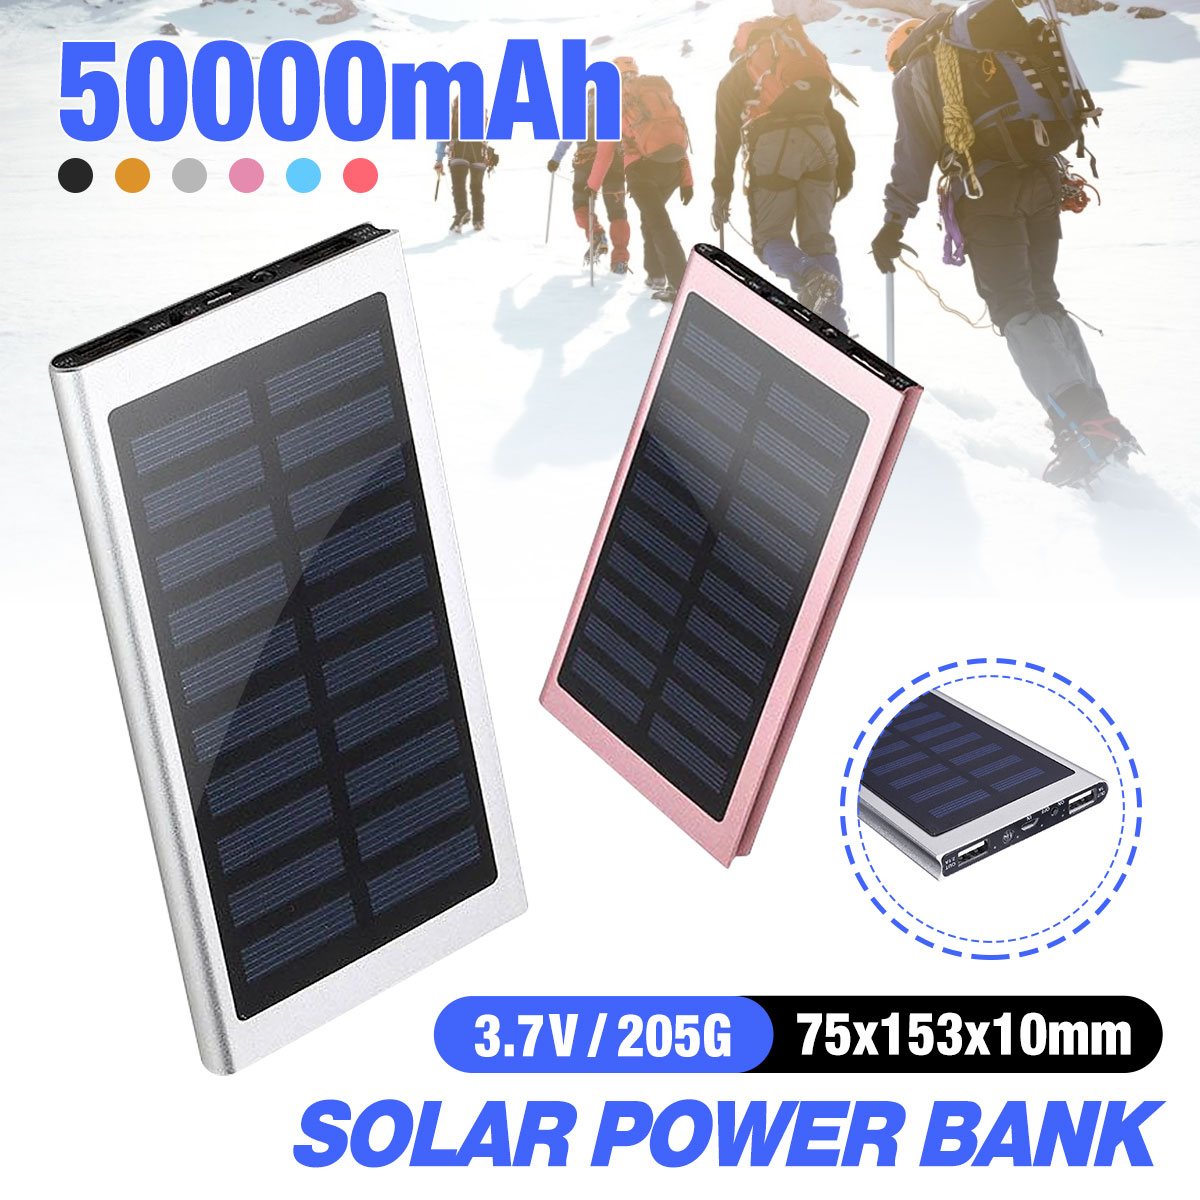 Portable Power Bank 50000mah External Battery 2 USB LED Powerbank Mobile Phone Solar Charger